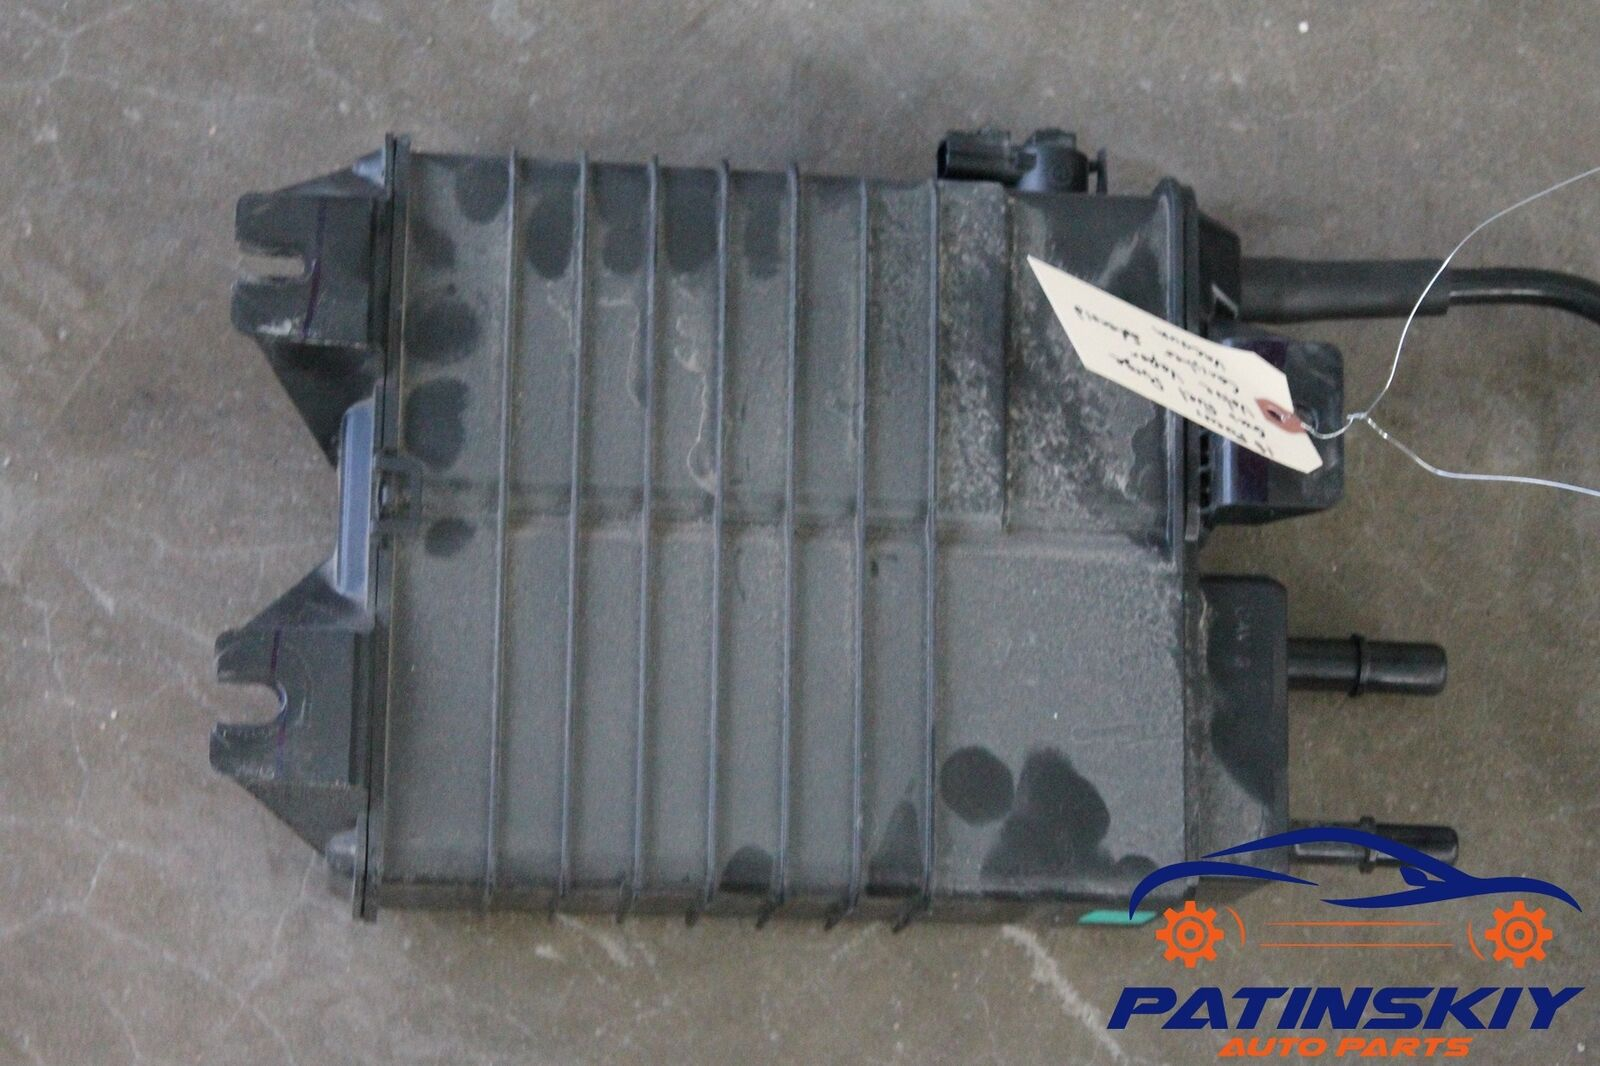 Used Ford Focus Emission System and Related Parts for Sale